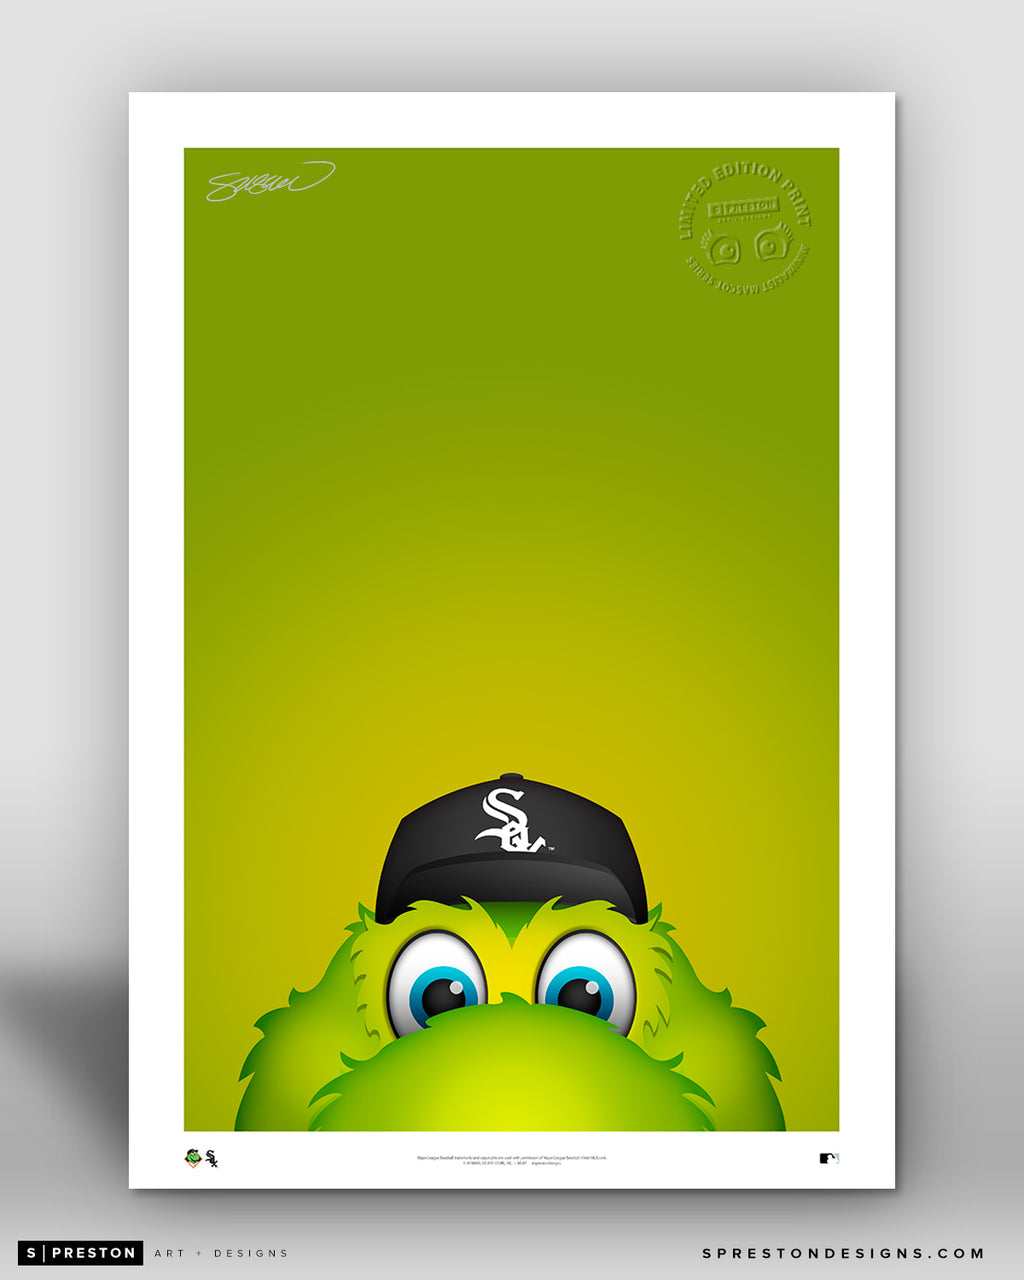 Minimalist Southpaw - Chicago White Sox - S. Preston